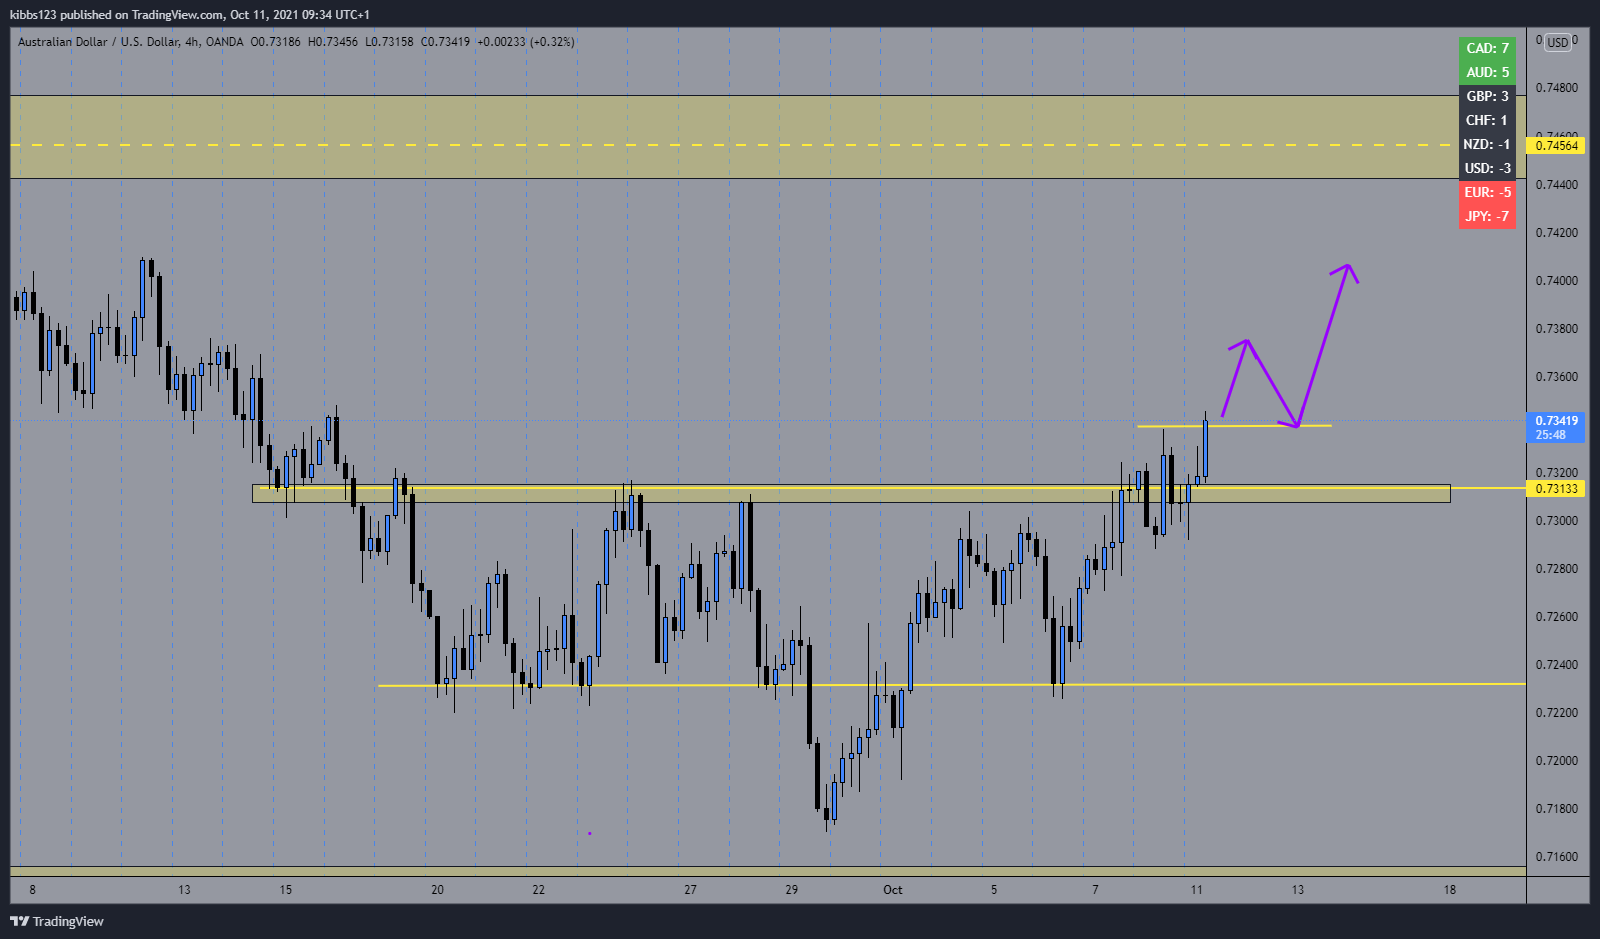 forex currency strength meter AUDUSD